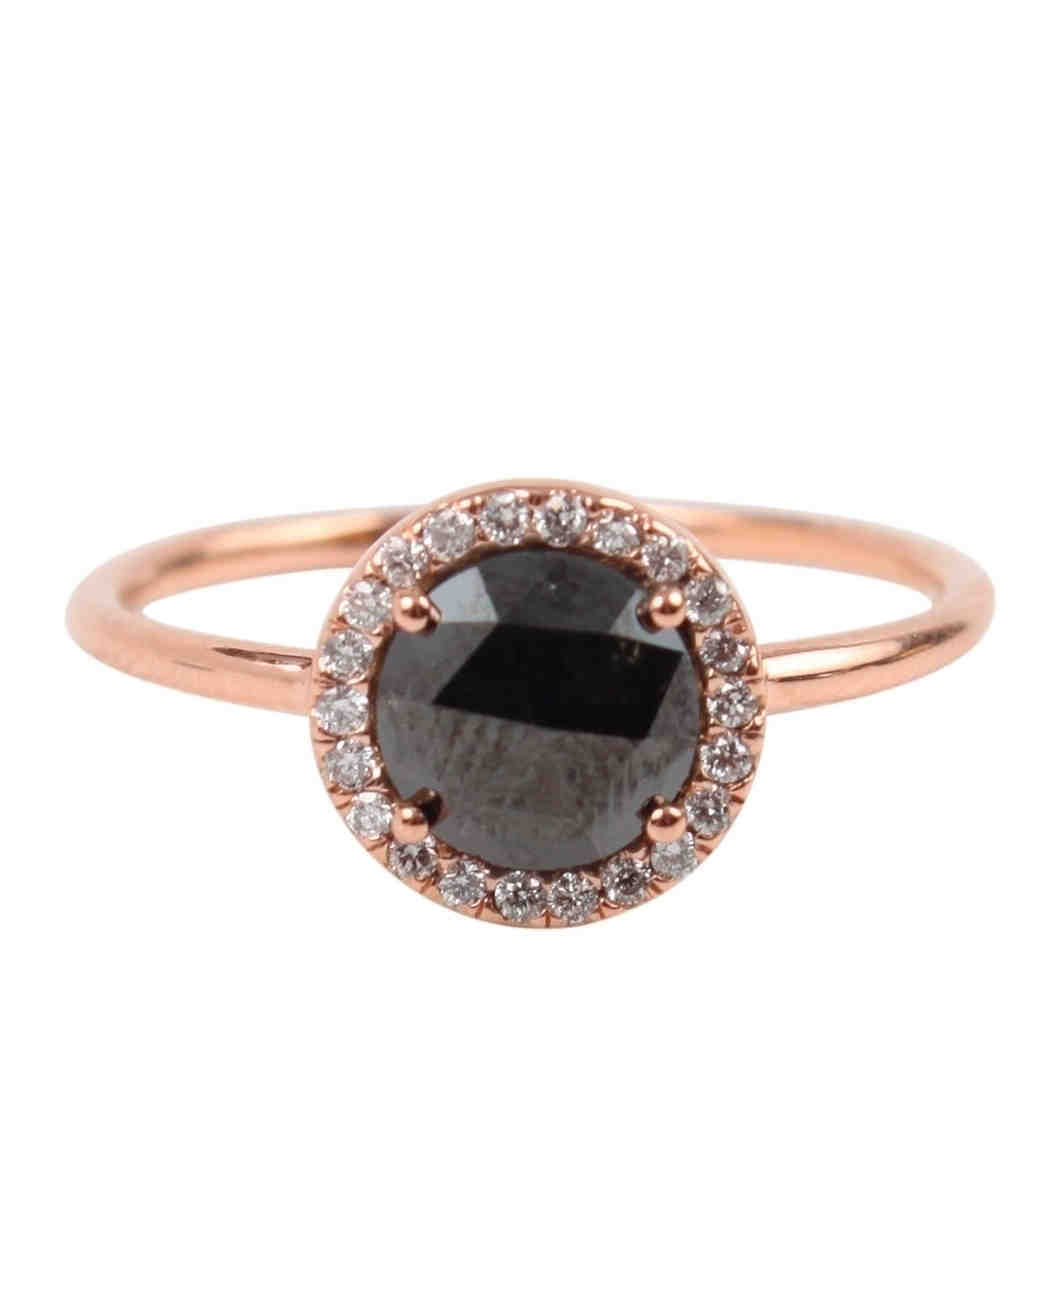 grew ring the fine inspiration rings wedding pin engagement style and jewelry jewellery diamond black co lane